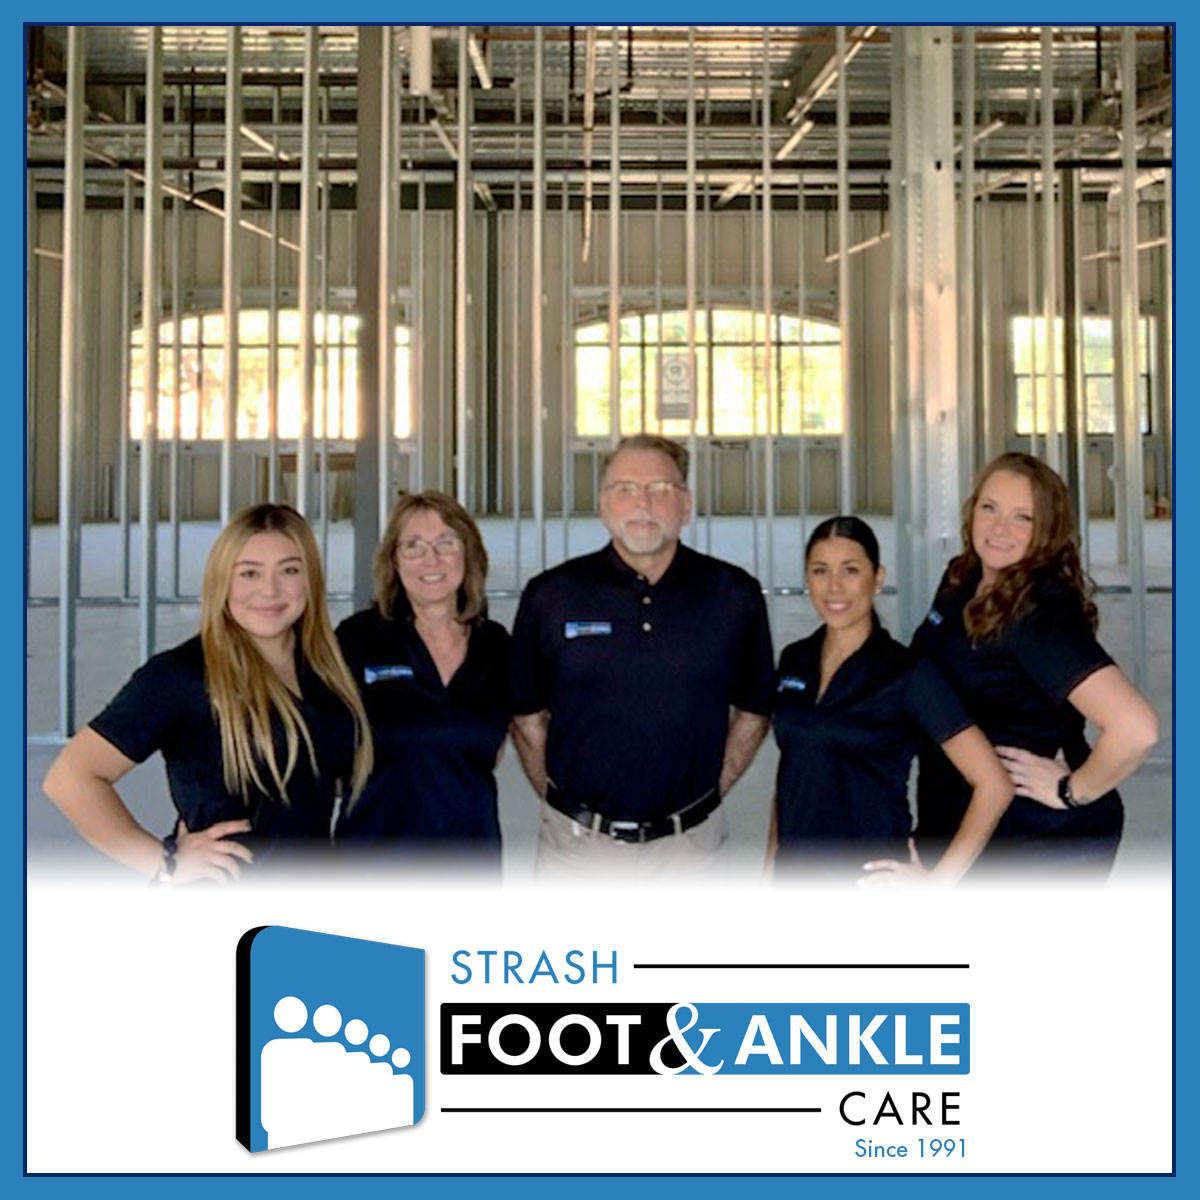 Strash Foot & Ankle Care in San Antonio is adding a location in the Village of Sonterra